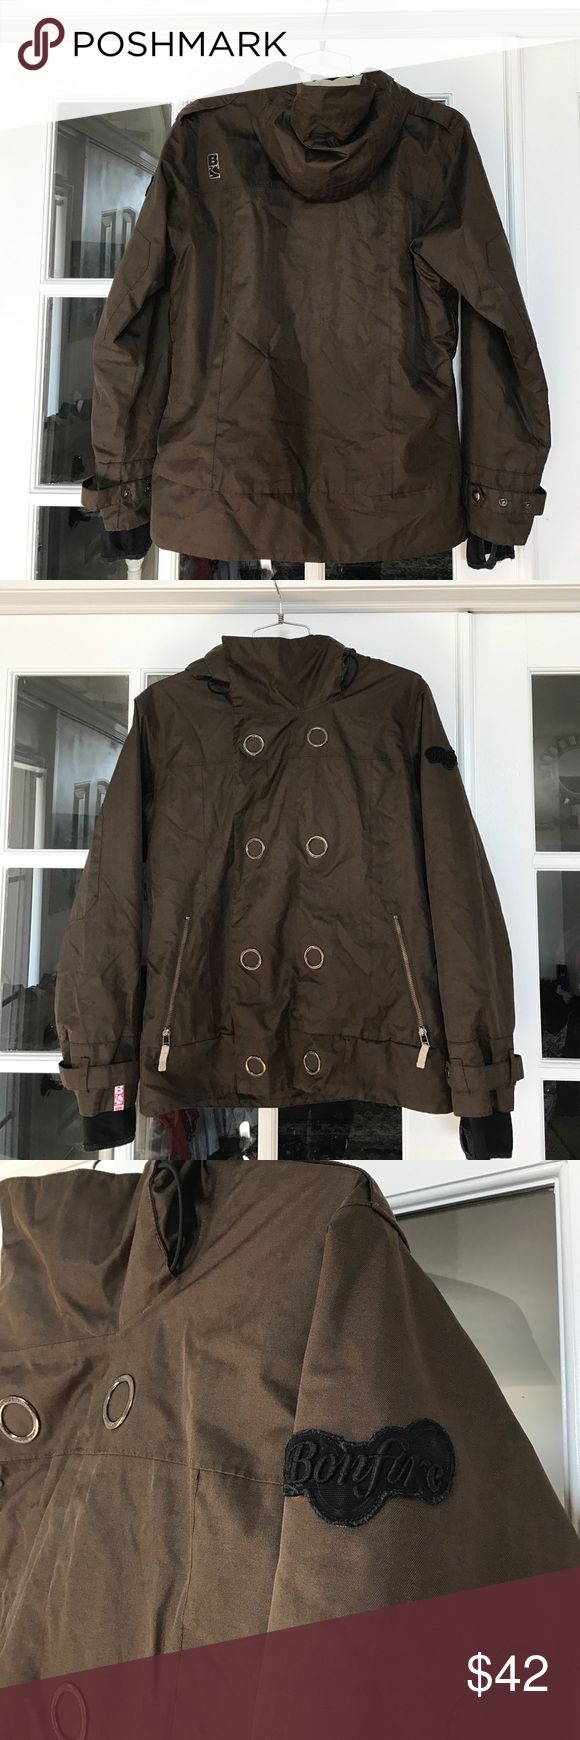 Awesome Bonfire Snowboarding Coat. Women's Large This is a killer coat from the Bonfire Snowboarding Company. 5 pockets, zip and Velcro front closure, all the necessities of a good boarding coat. Women's size Large. Bonfire Snowboarding Company Jackets & Coats